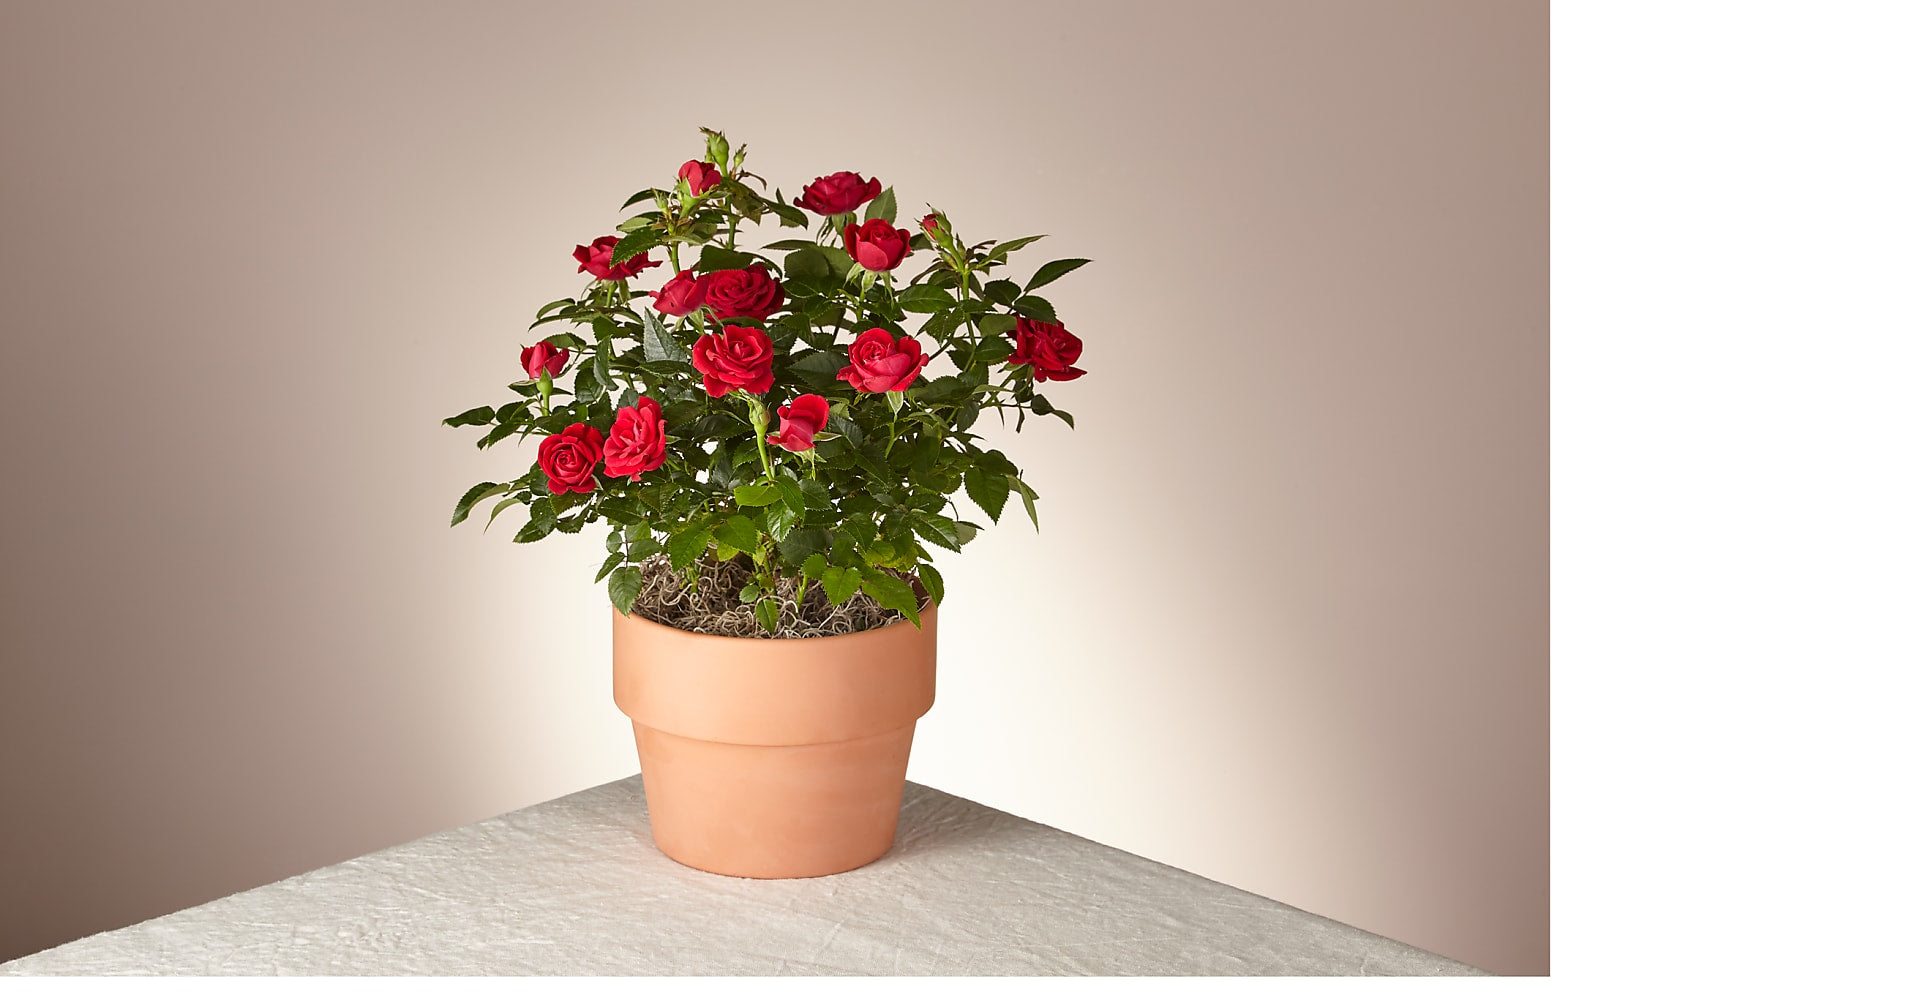 Blooming Red Rose Plant - Image 1 Of 2